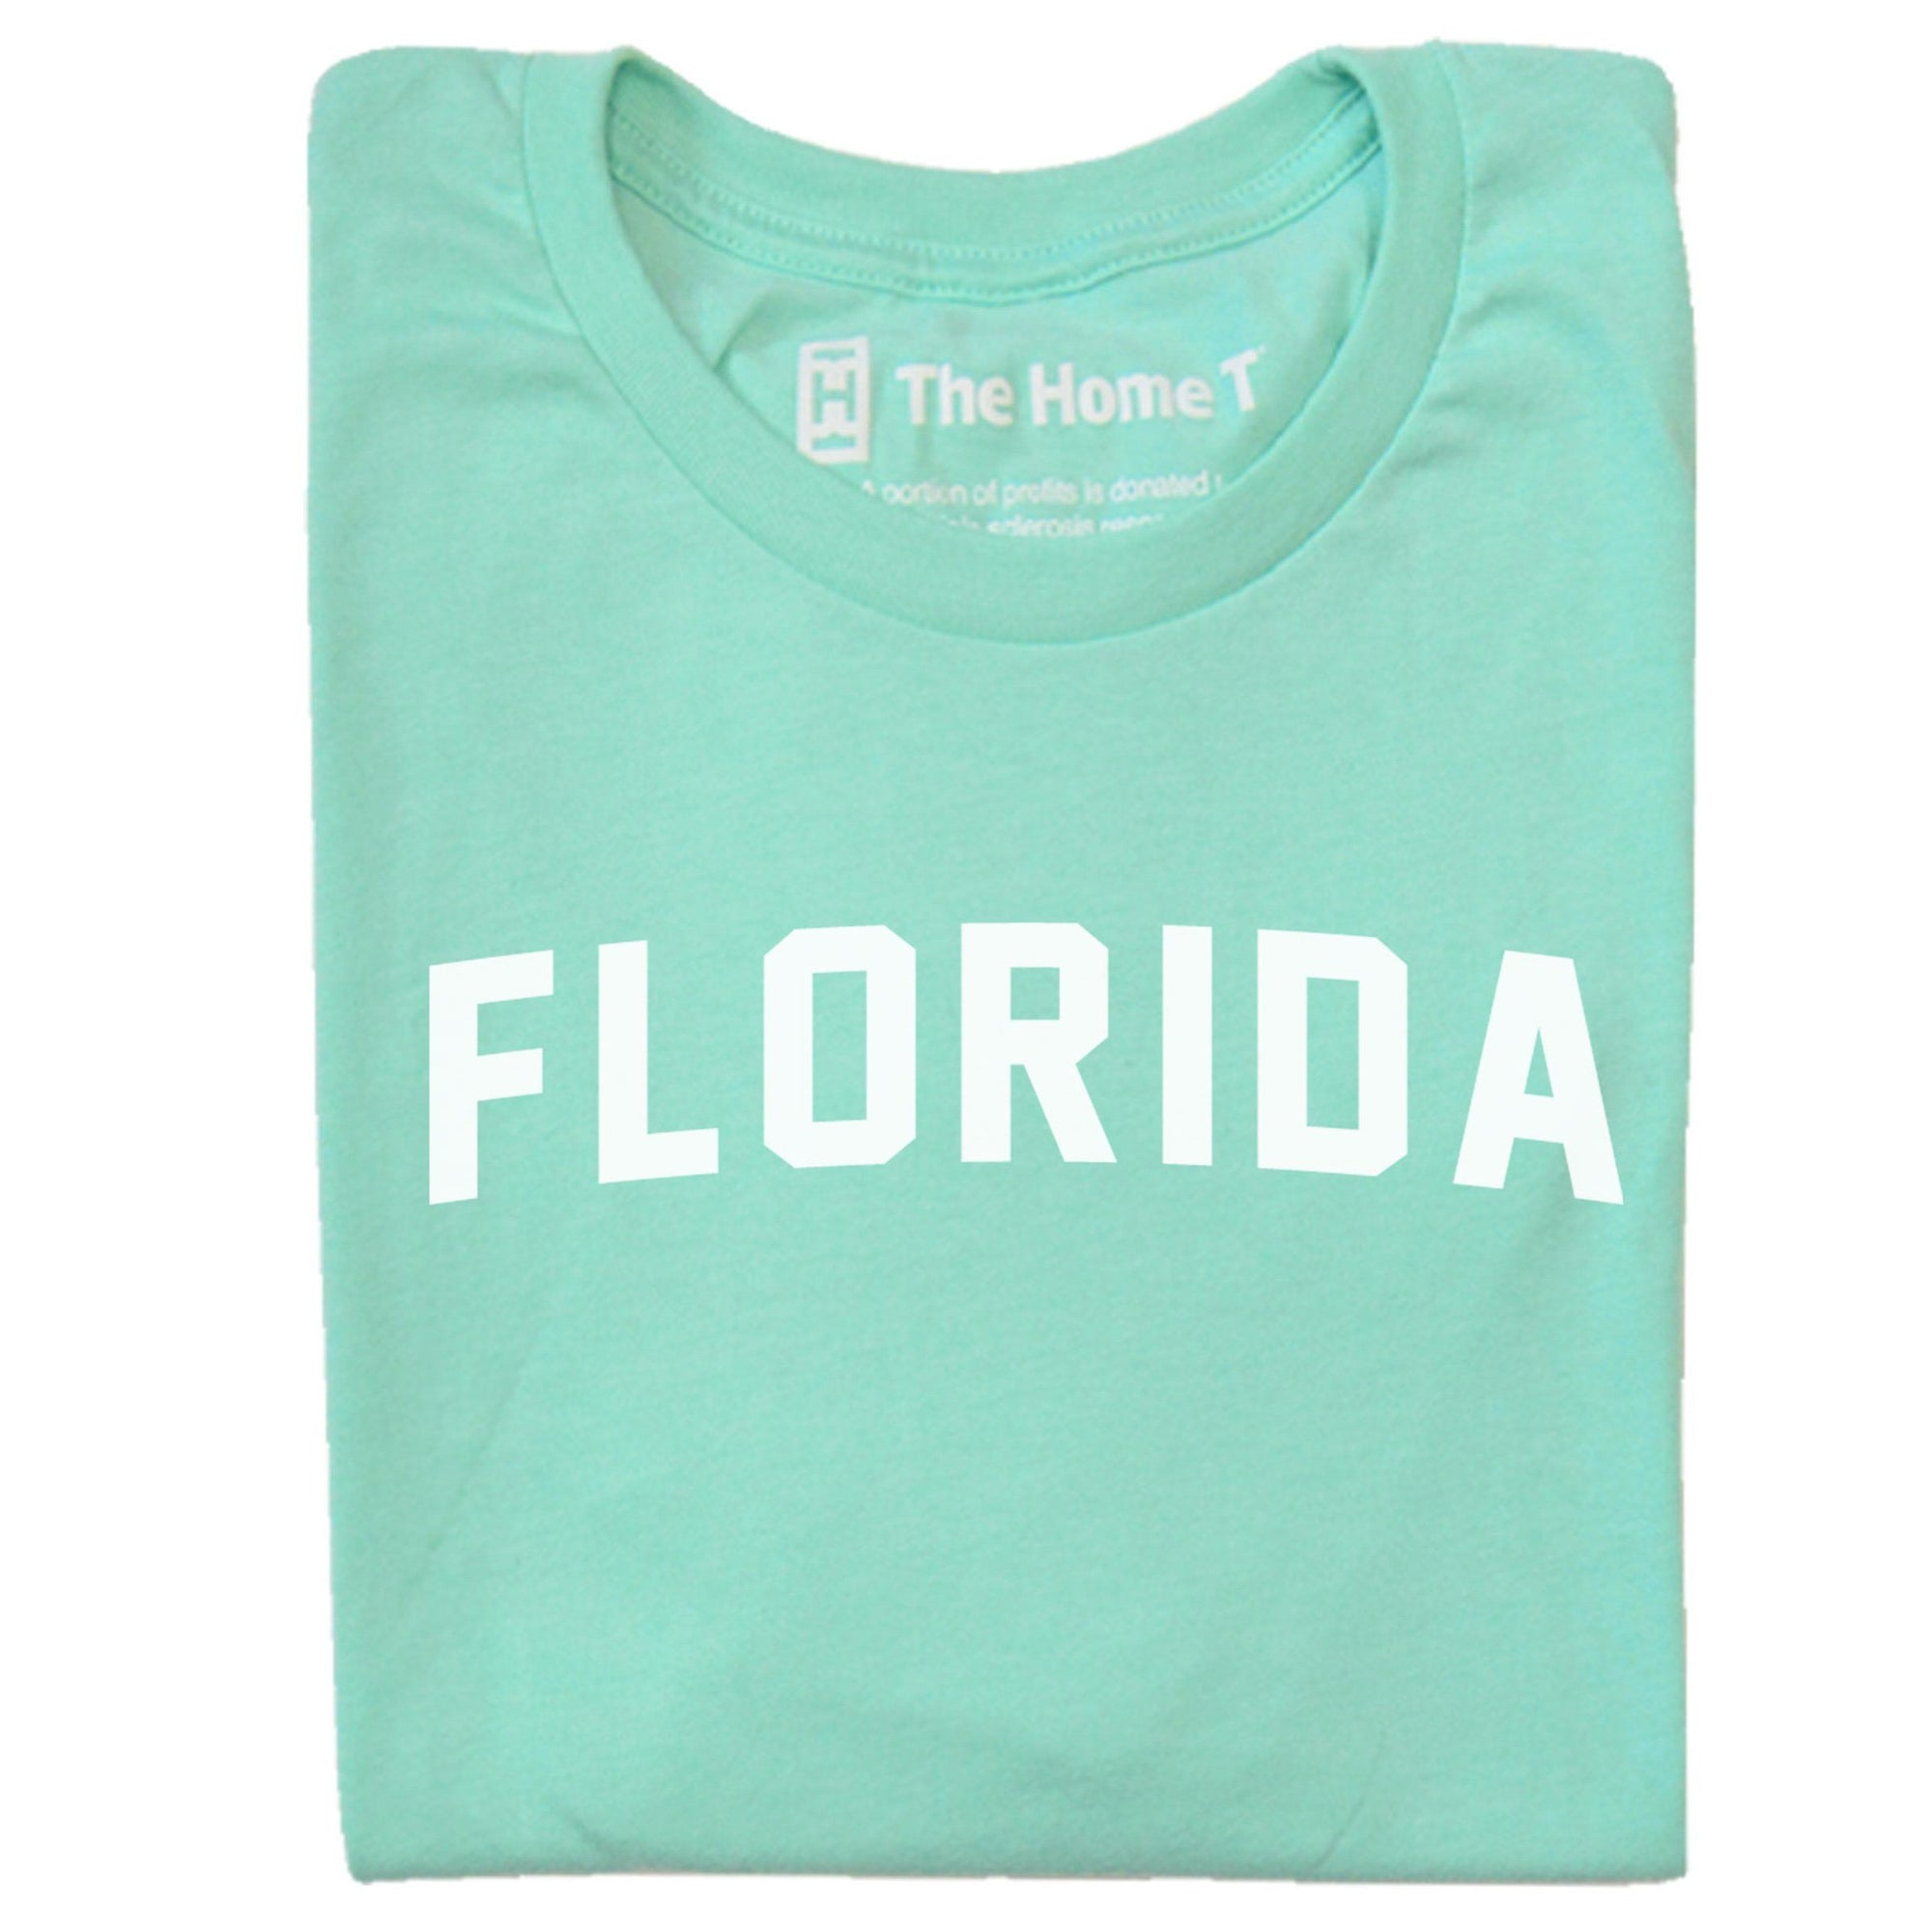 Florida Arched The Home T XS Mint